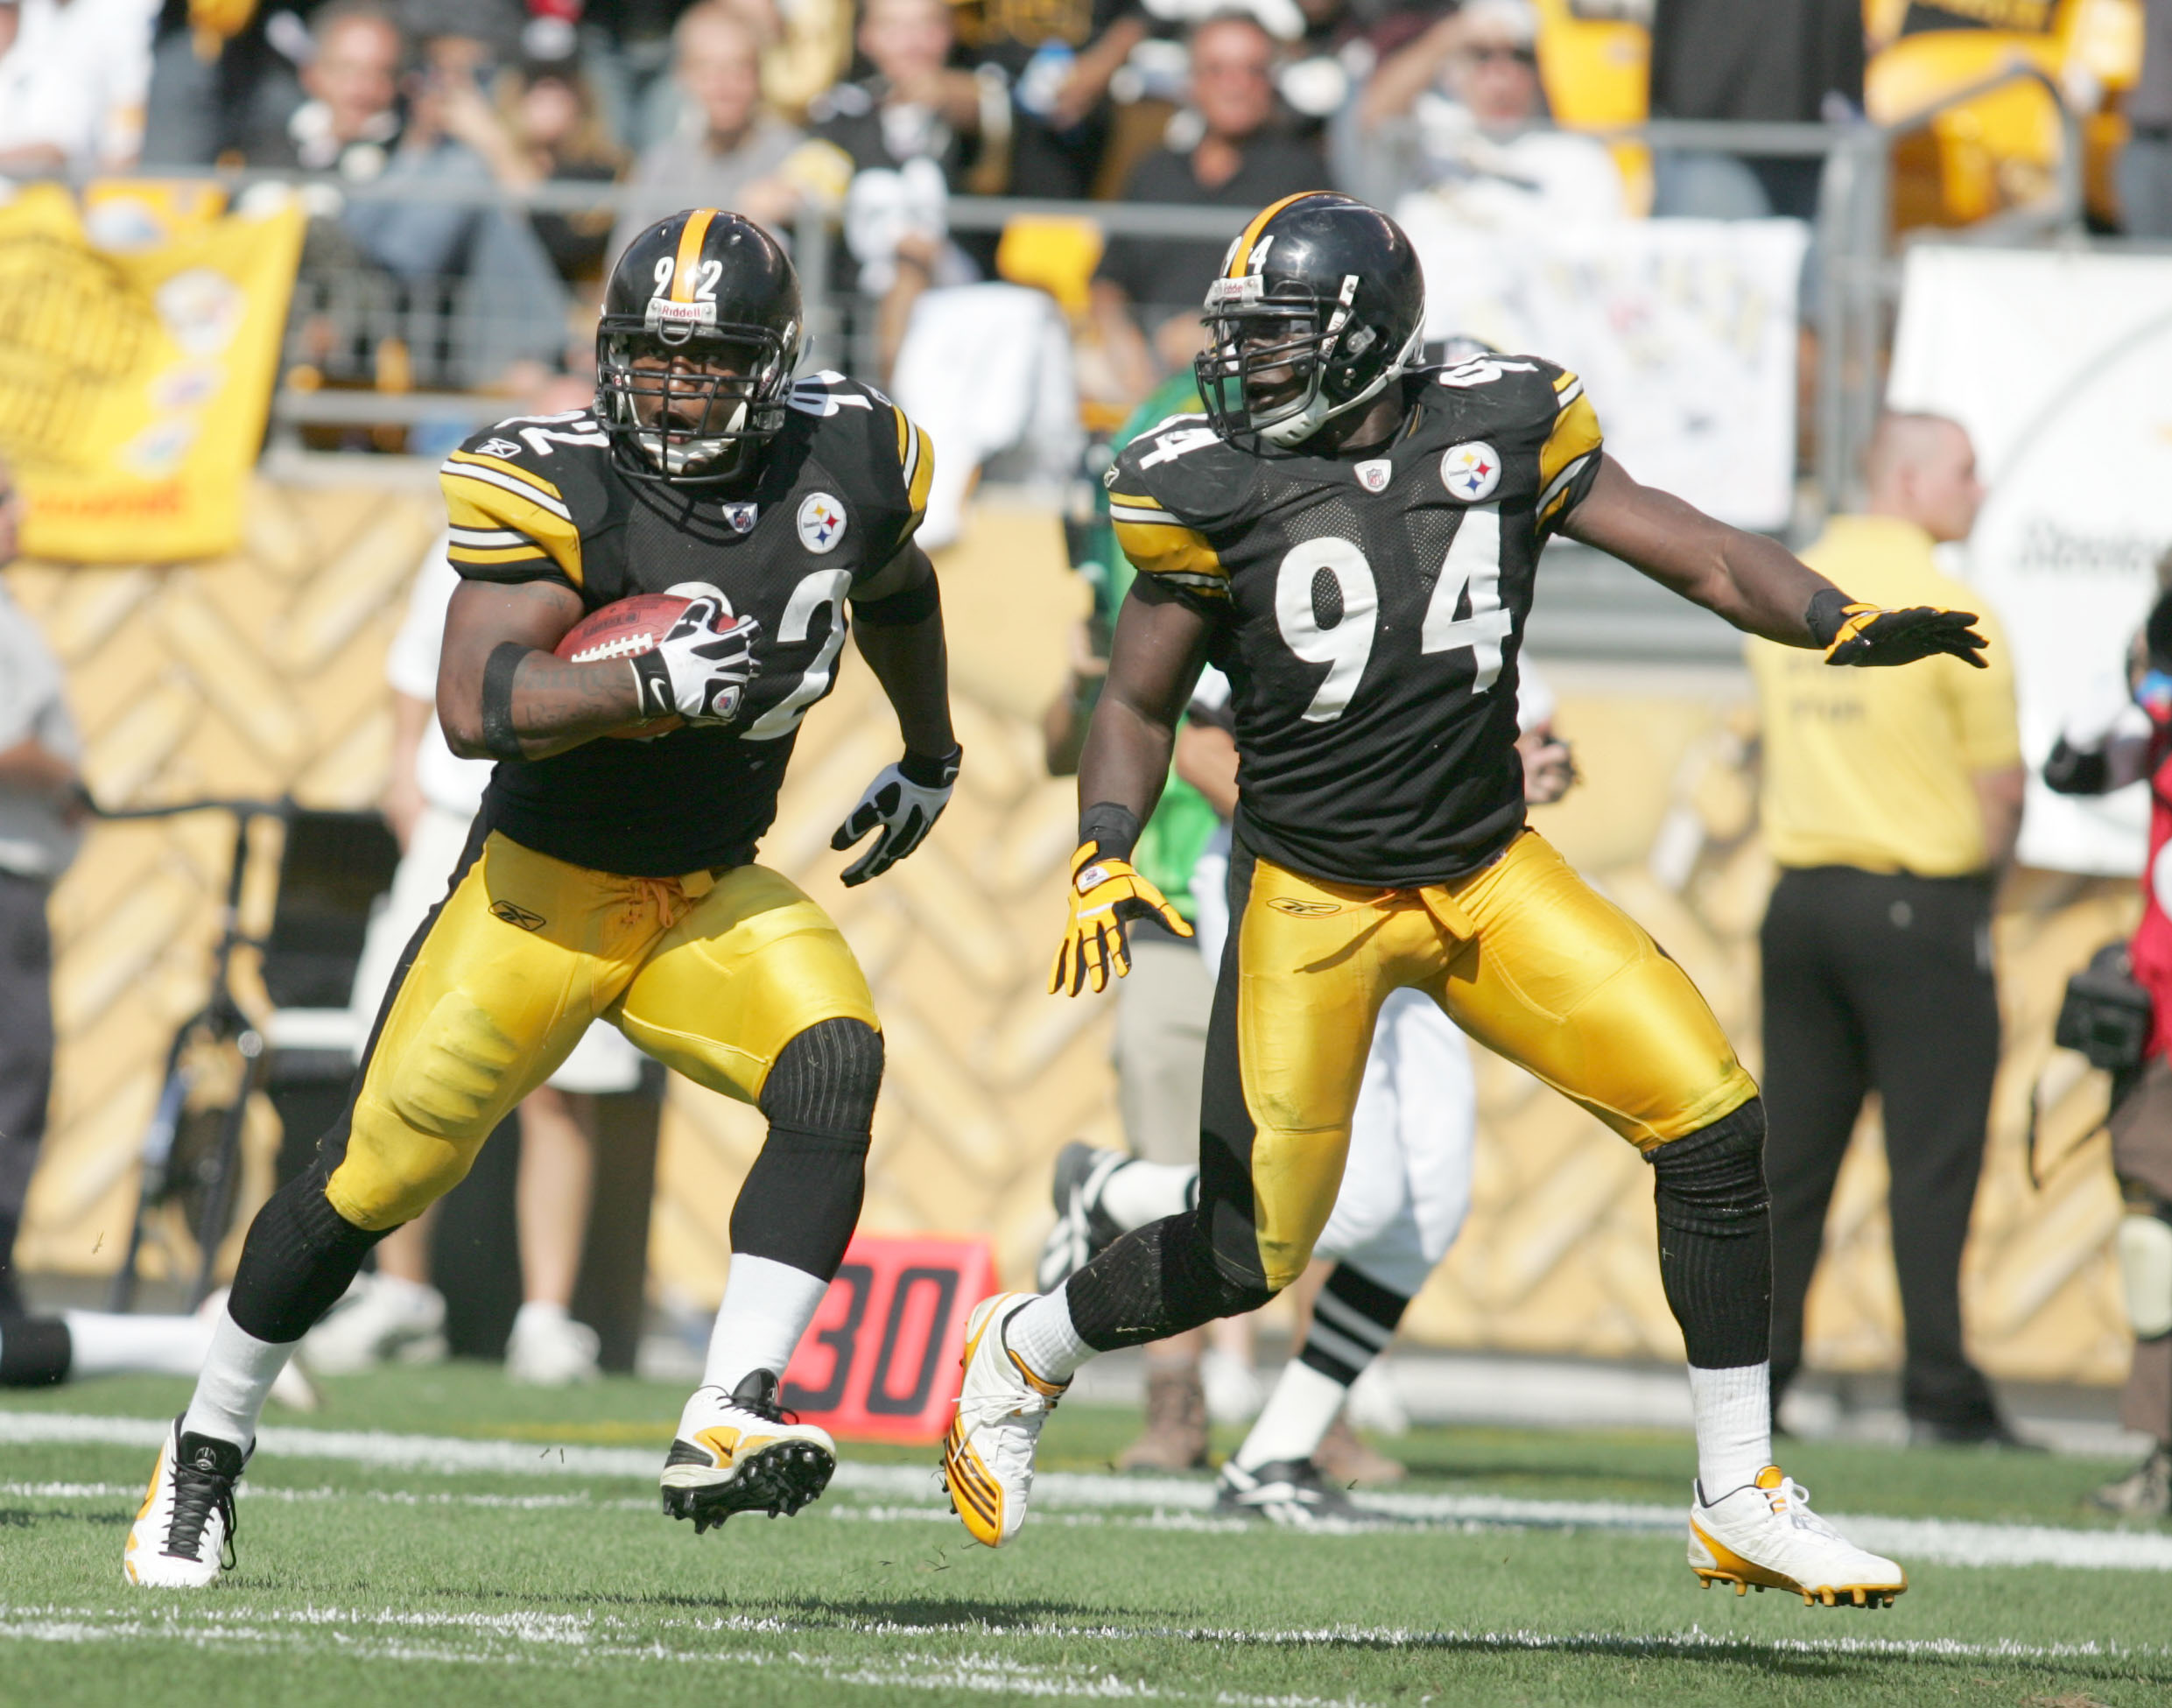 Lawrence Timmons (94) and James Harrison (92) - Pittsburgh Steelers